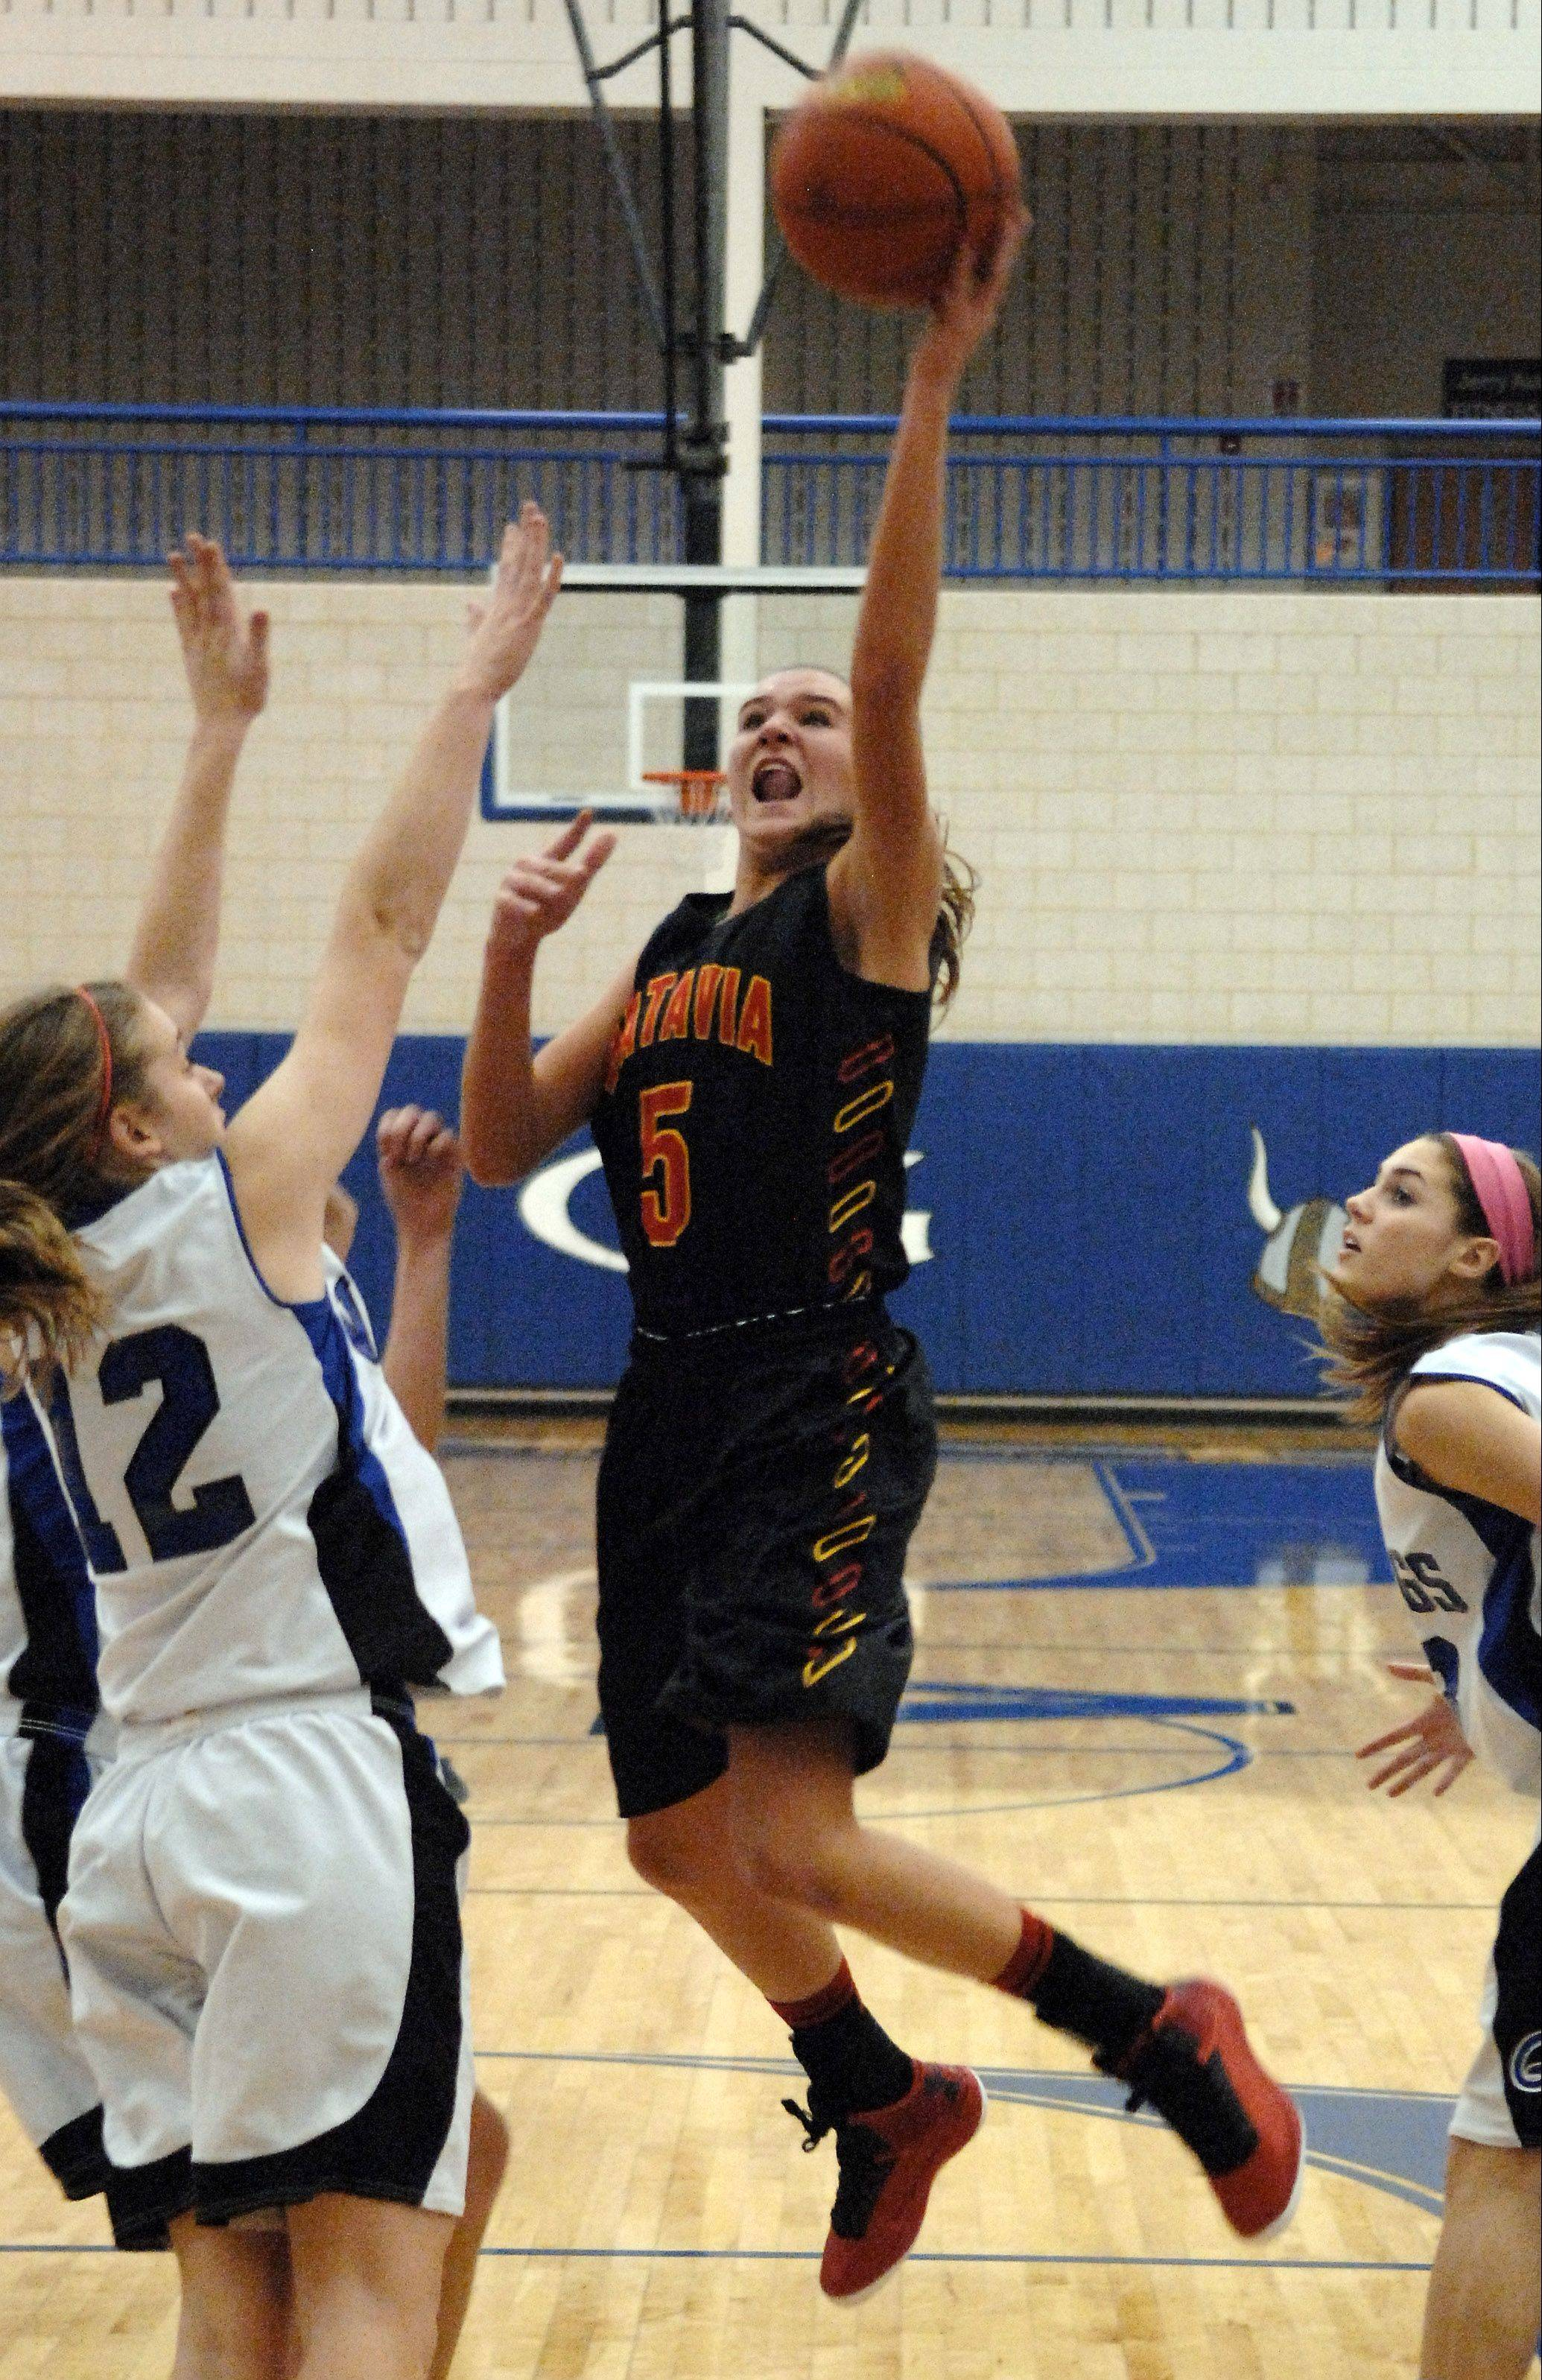 Batavia's Liza Fruendt led the area in scoring with drives to the basket like this and also by draining 80 3-point baskets.